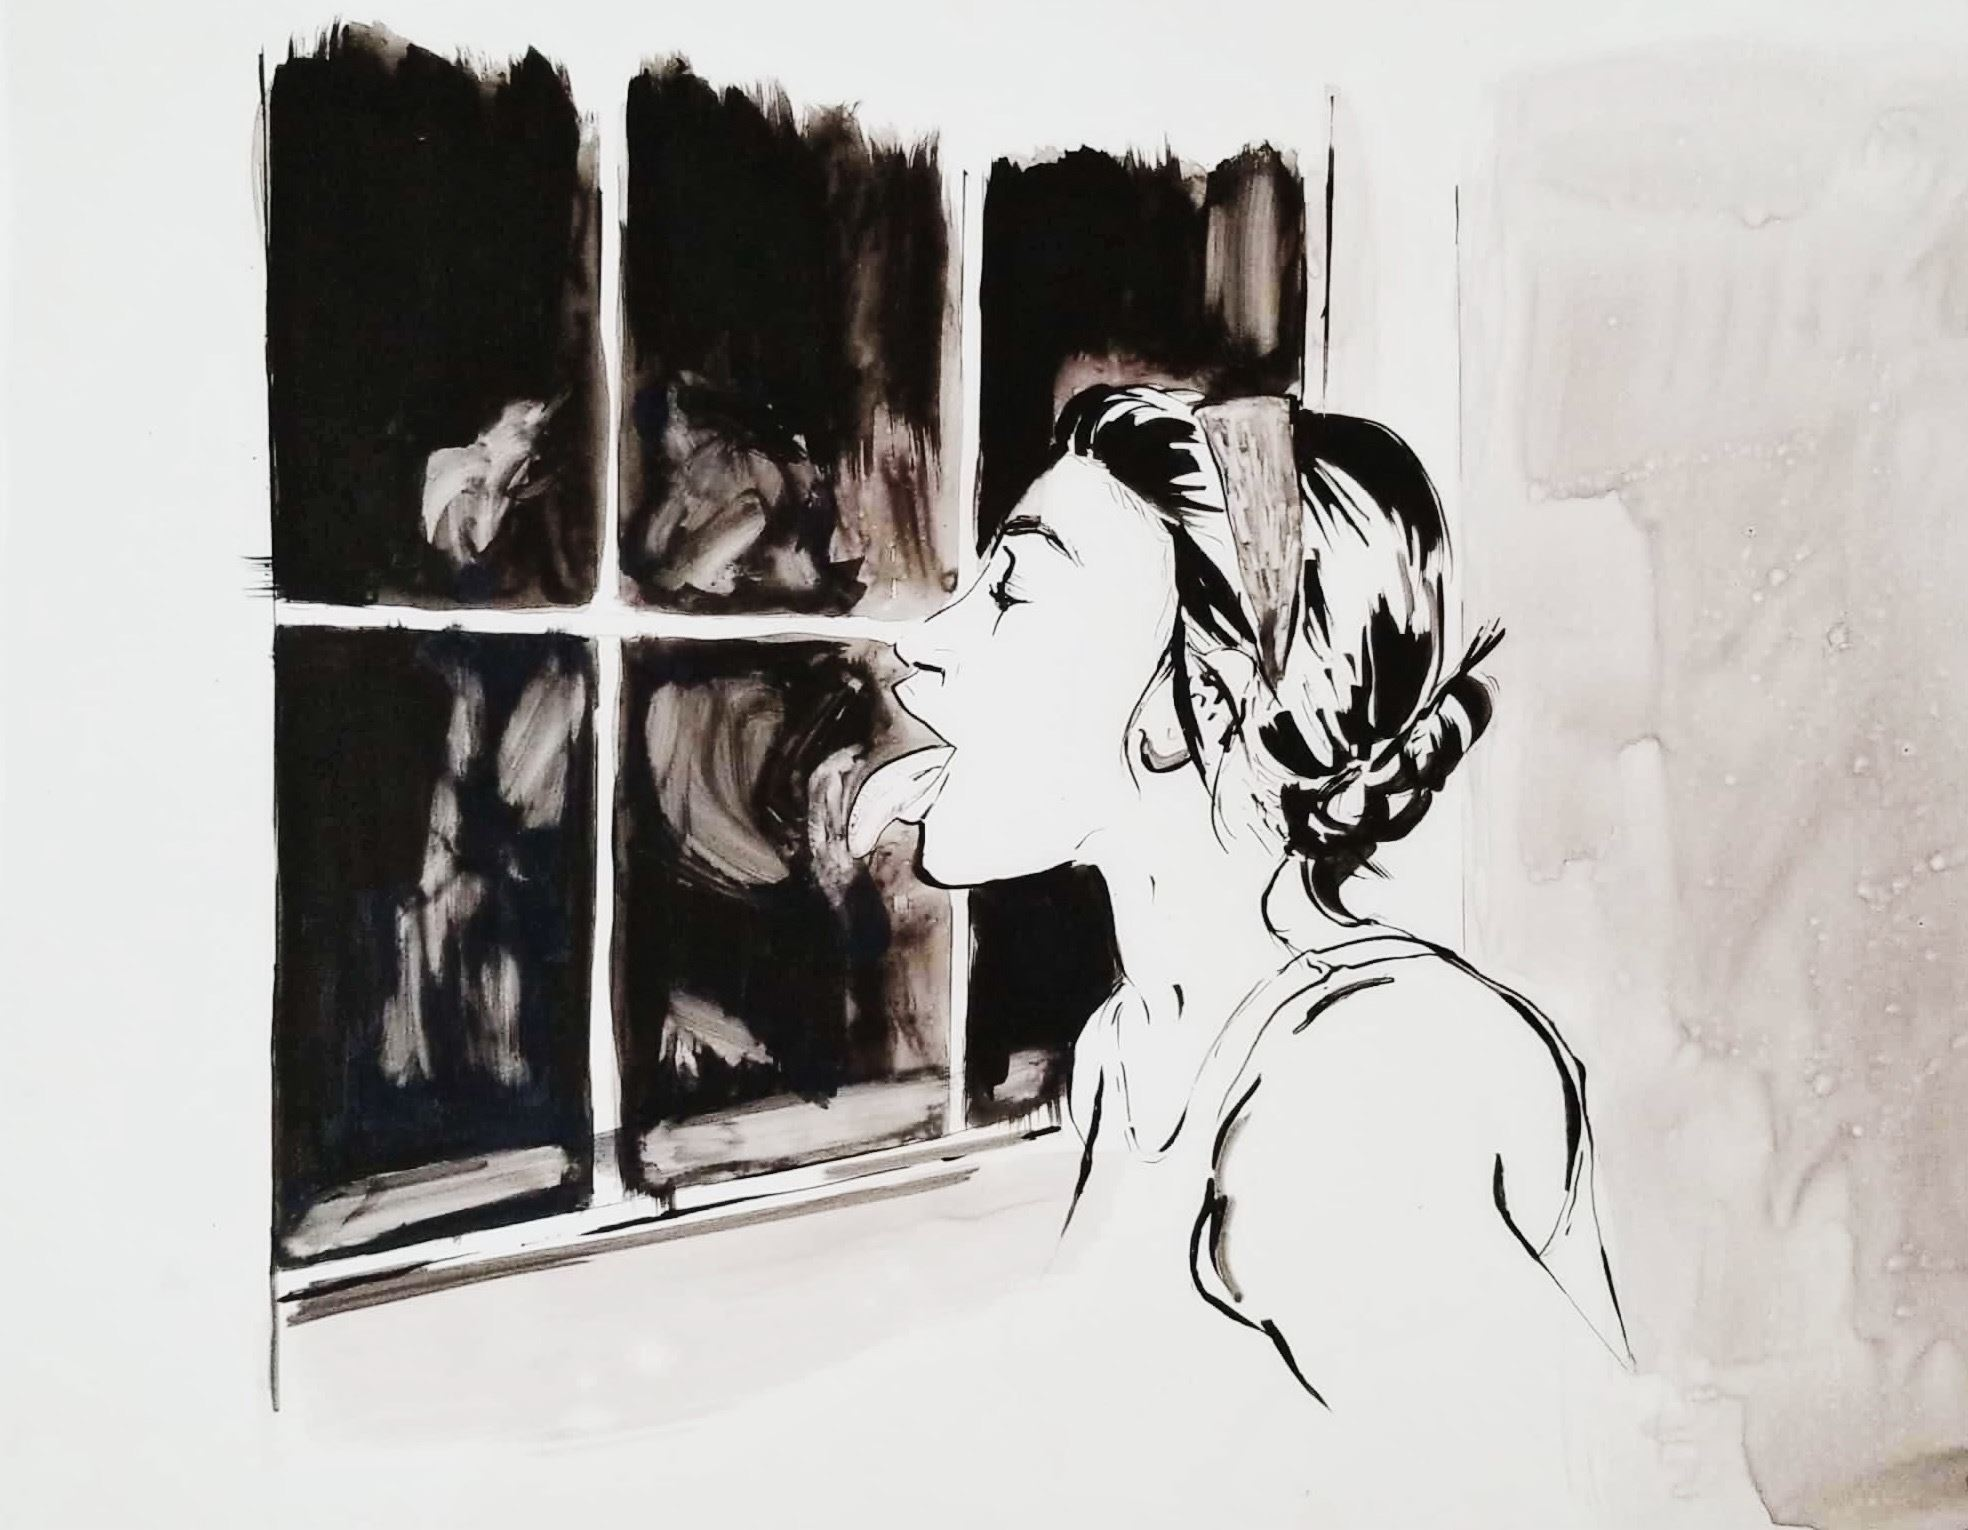 Blank and white ink painting of a woman licking a window